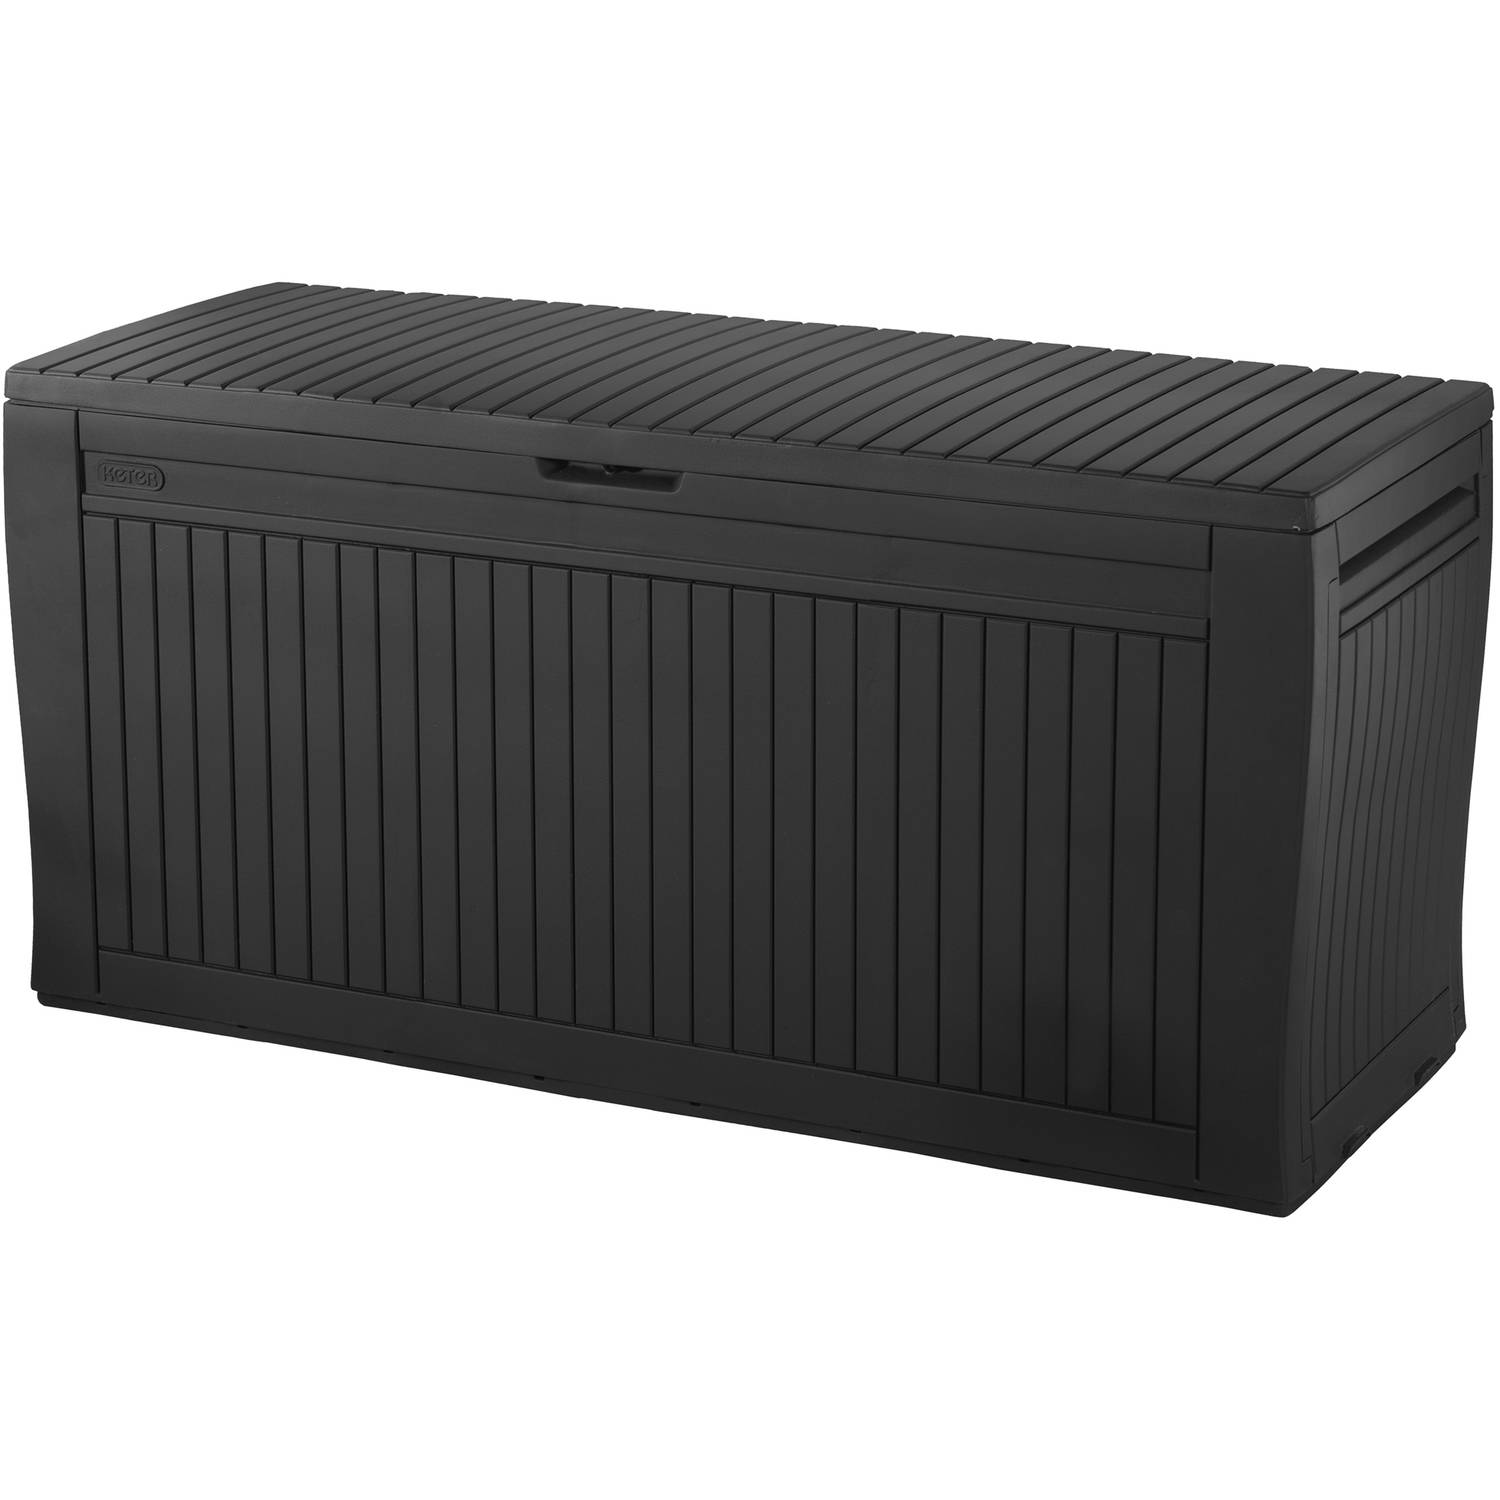 Keter Comfy 71-Gal Outdoor Deck Box, Espresso Brown